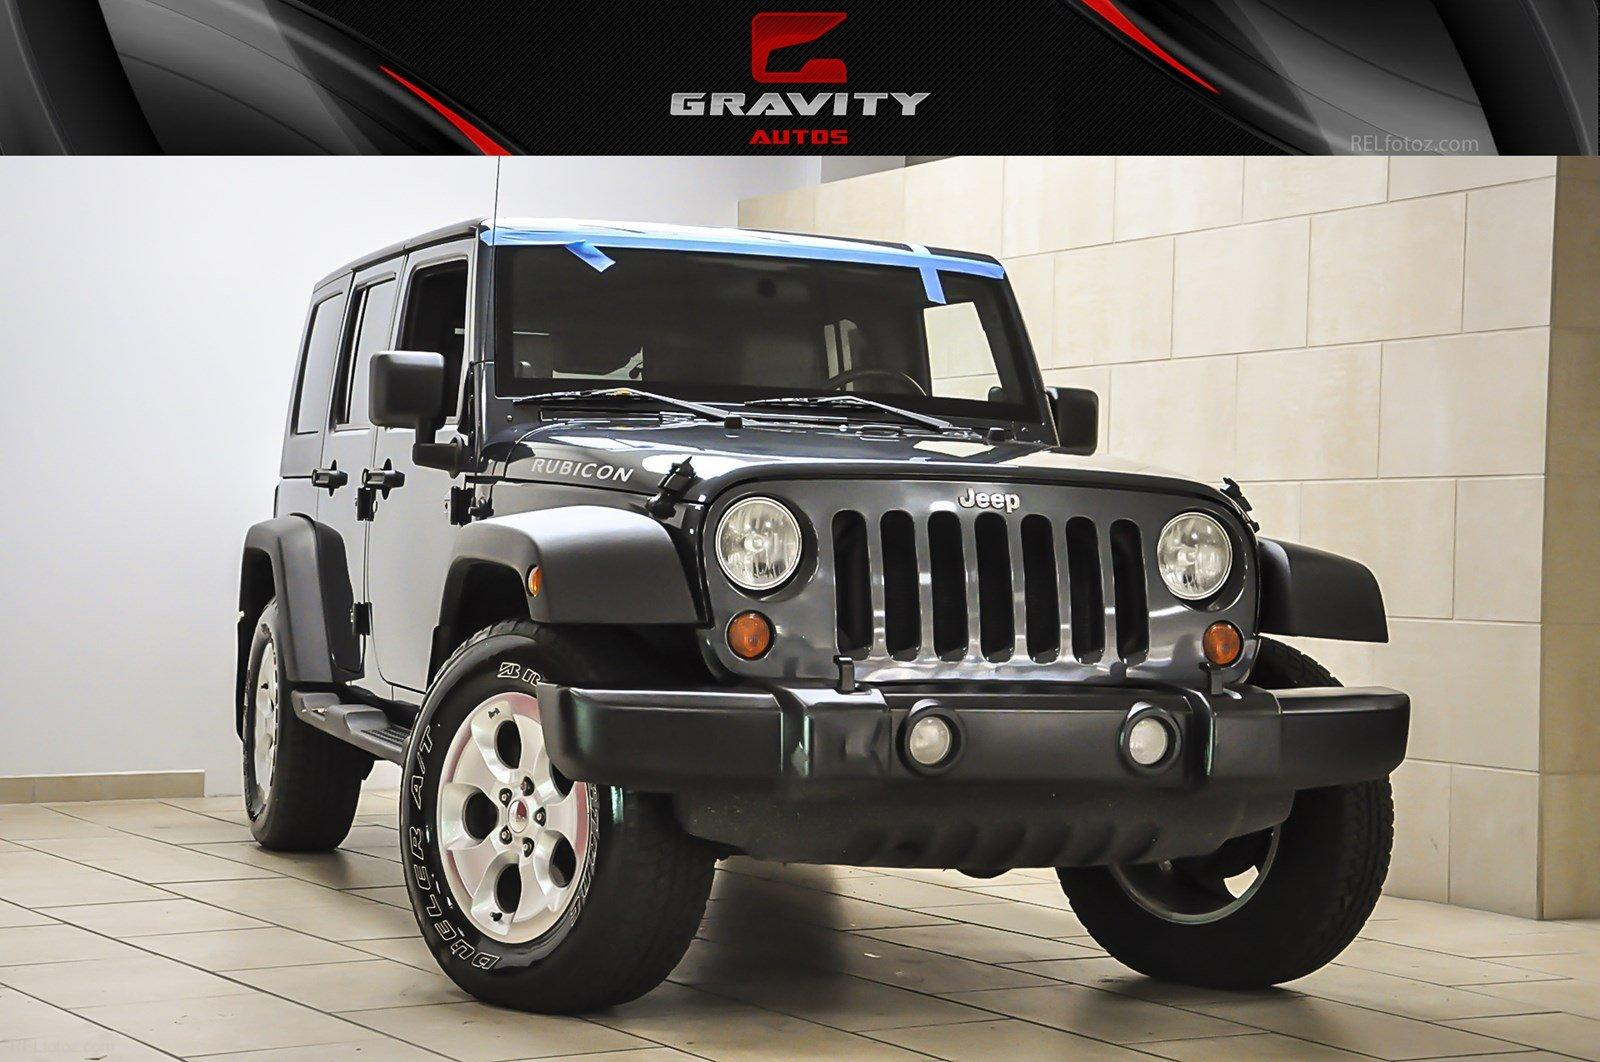 2007 jeep wrangler unlimited rubicon stock 127090 for sale near sandy springs ga ga jeep dealer. Black Bedroom Furniture Sets. Home Design Ideas